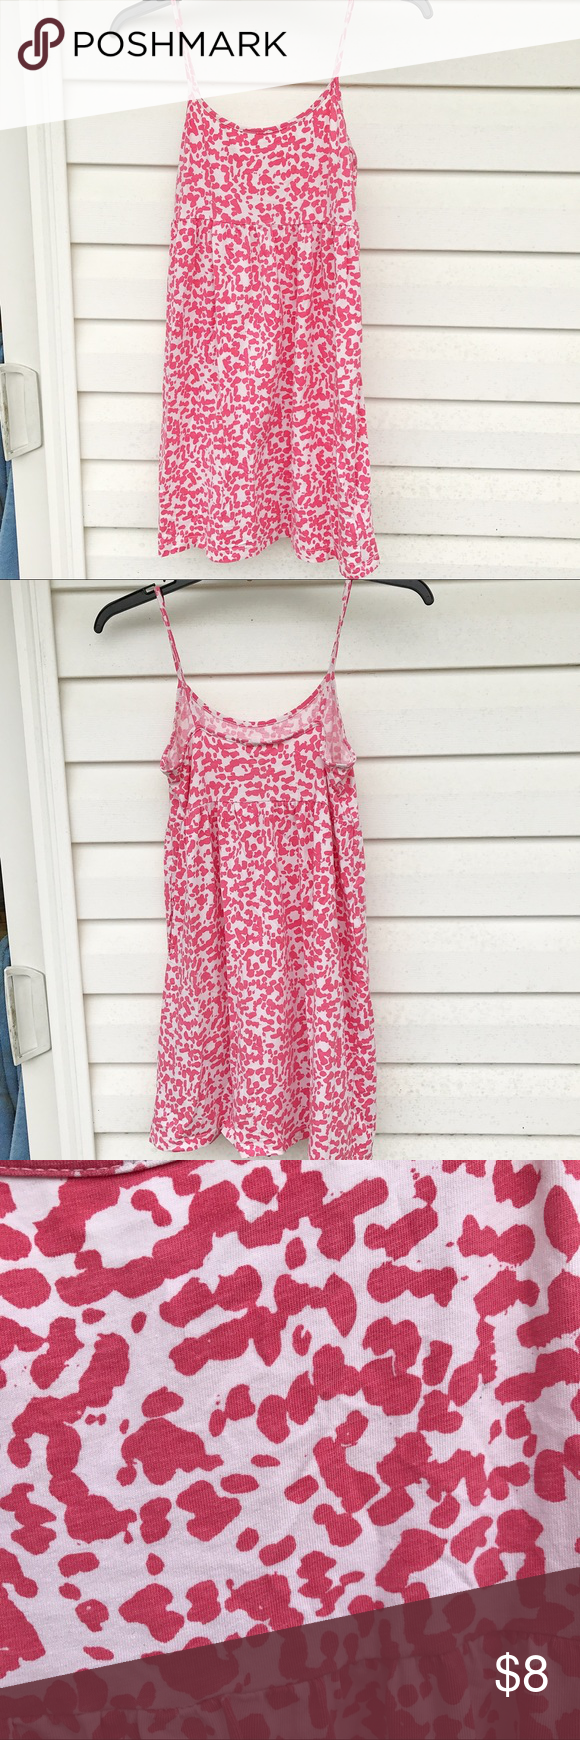 Cute Forever 21 short sundress Very lightweight and perfect for those hot days of summer! I usually wore it with some cute sandals and sometimes with a panama sunhat! Unique, paint-spatter pattern and spaghetti straps. Forever 21 Dresses Mini #shortsundress